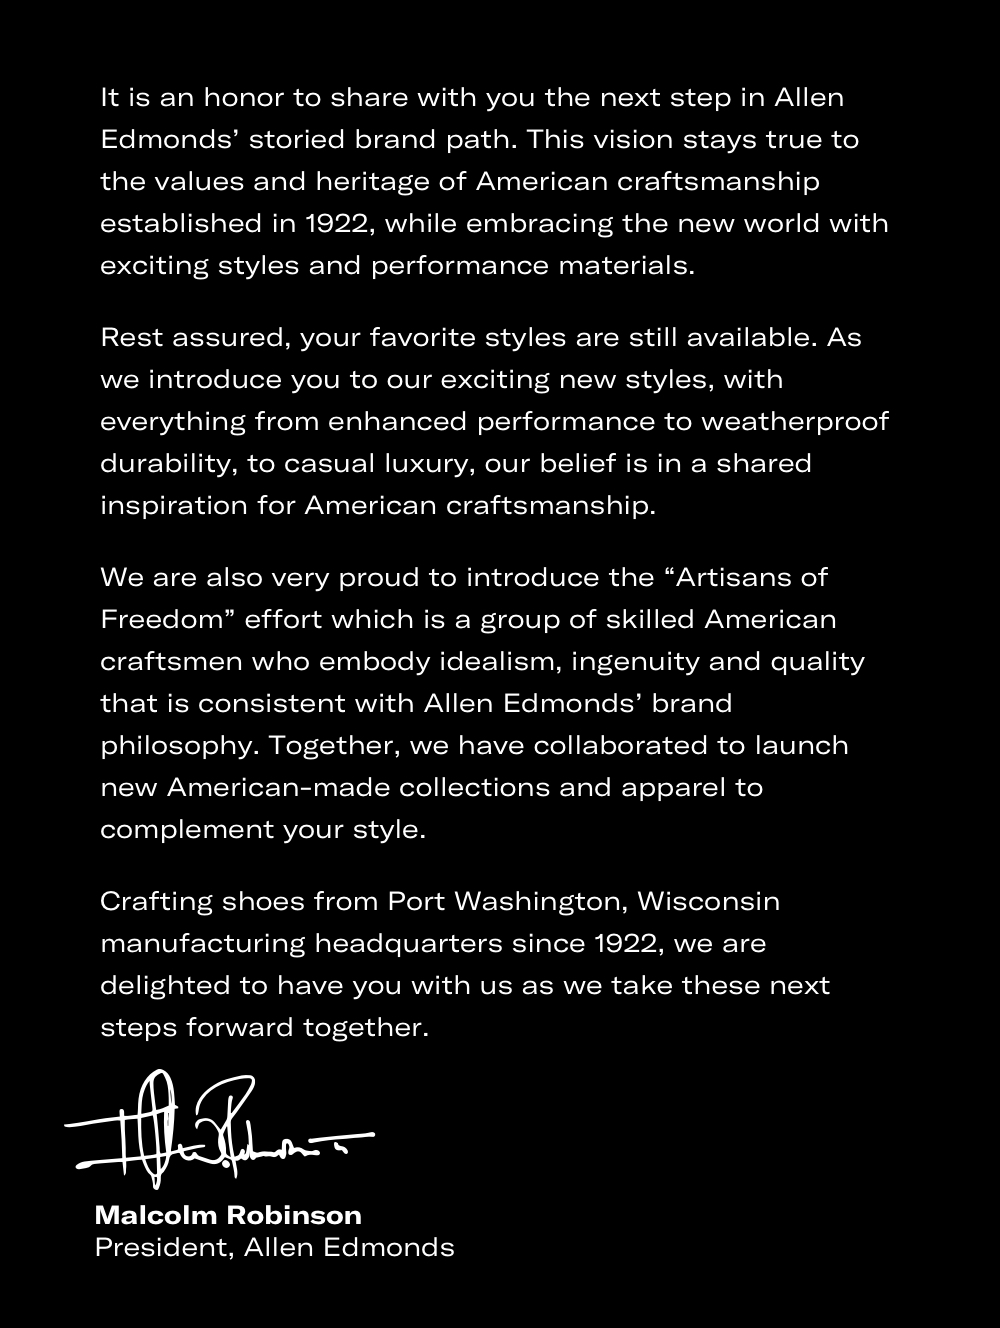 A Letter From The President of Allen Edmonds